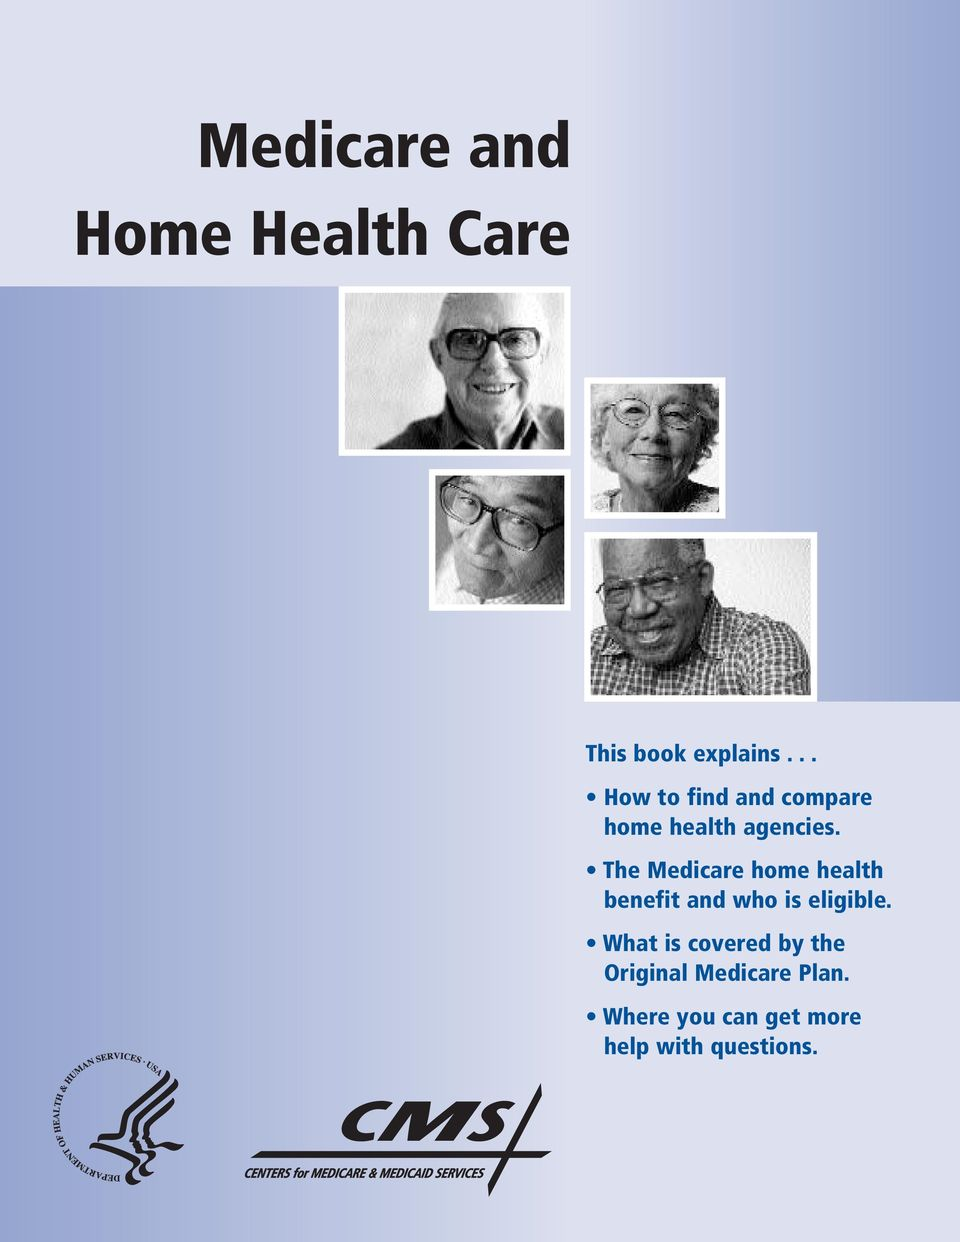 The Medicare home health benefit and who is eligible.